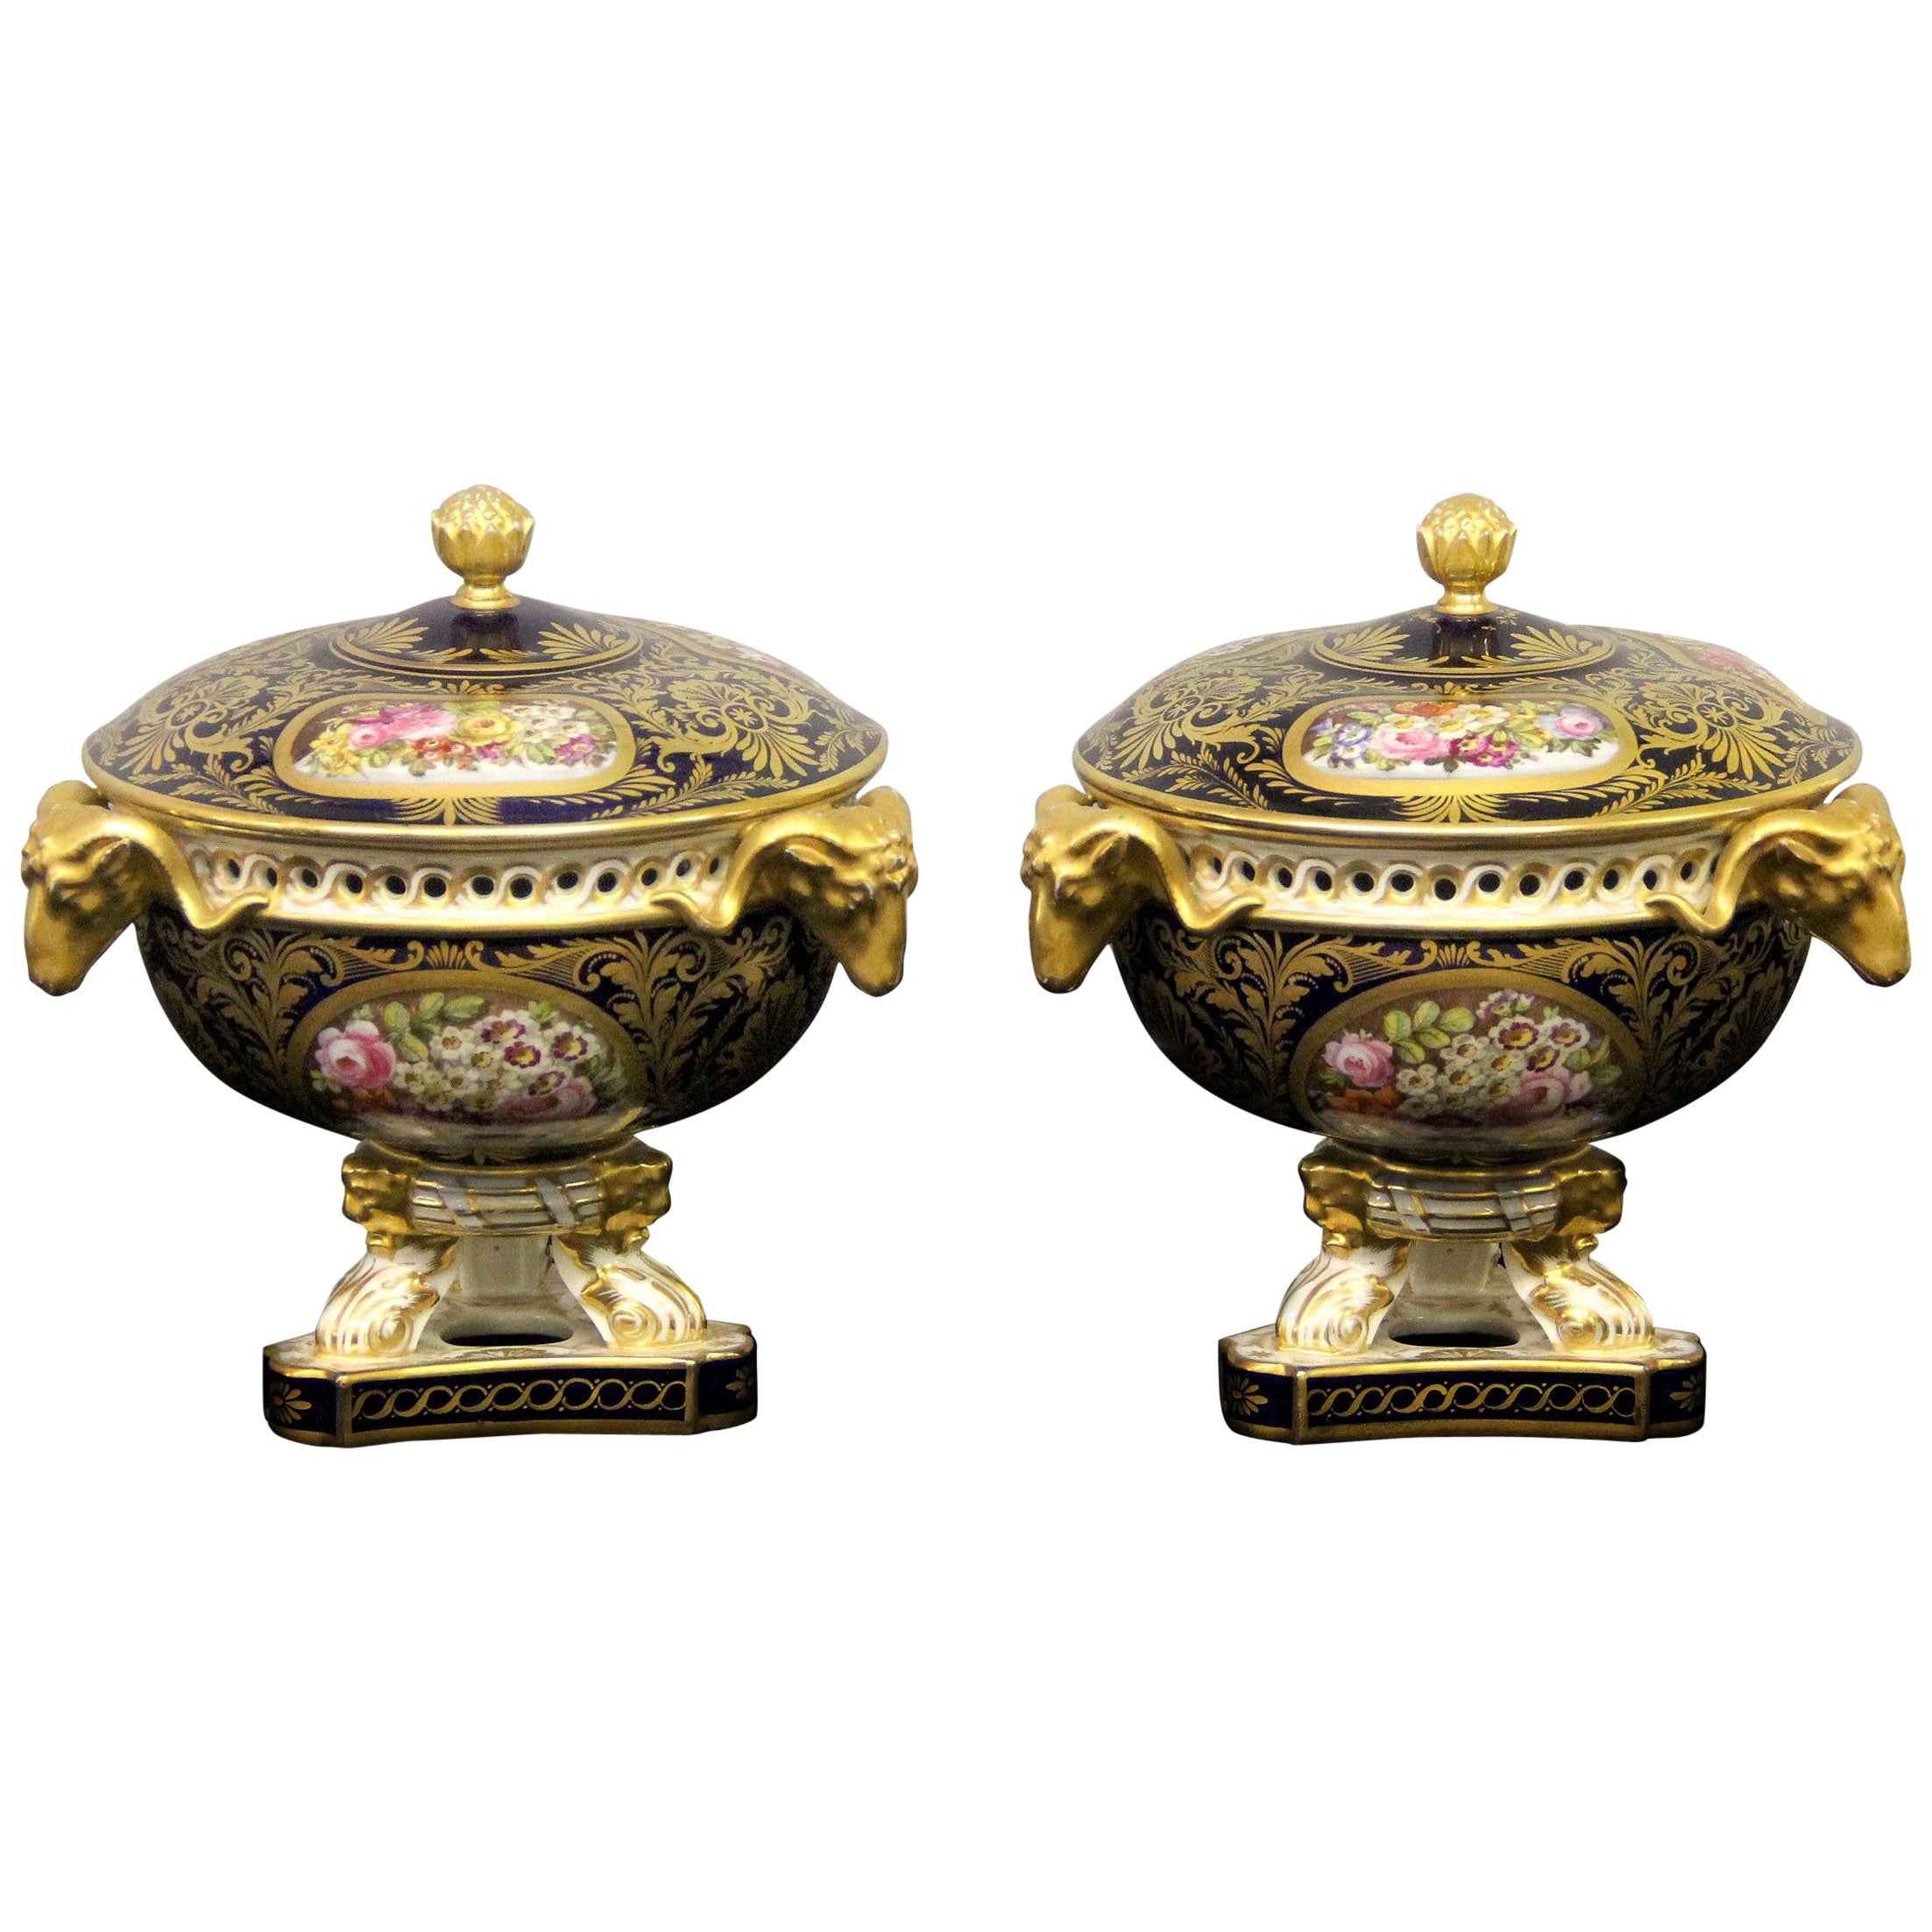 Beautiful Pair of Late 18th-Early 19th Century Crown Derby Porcelain Vases